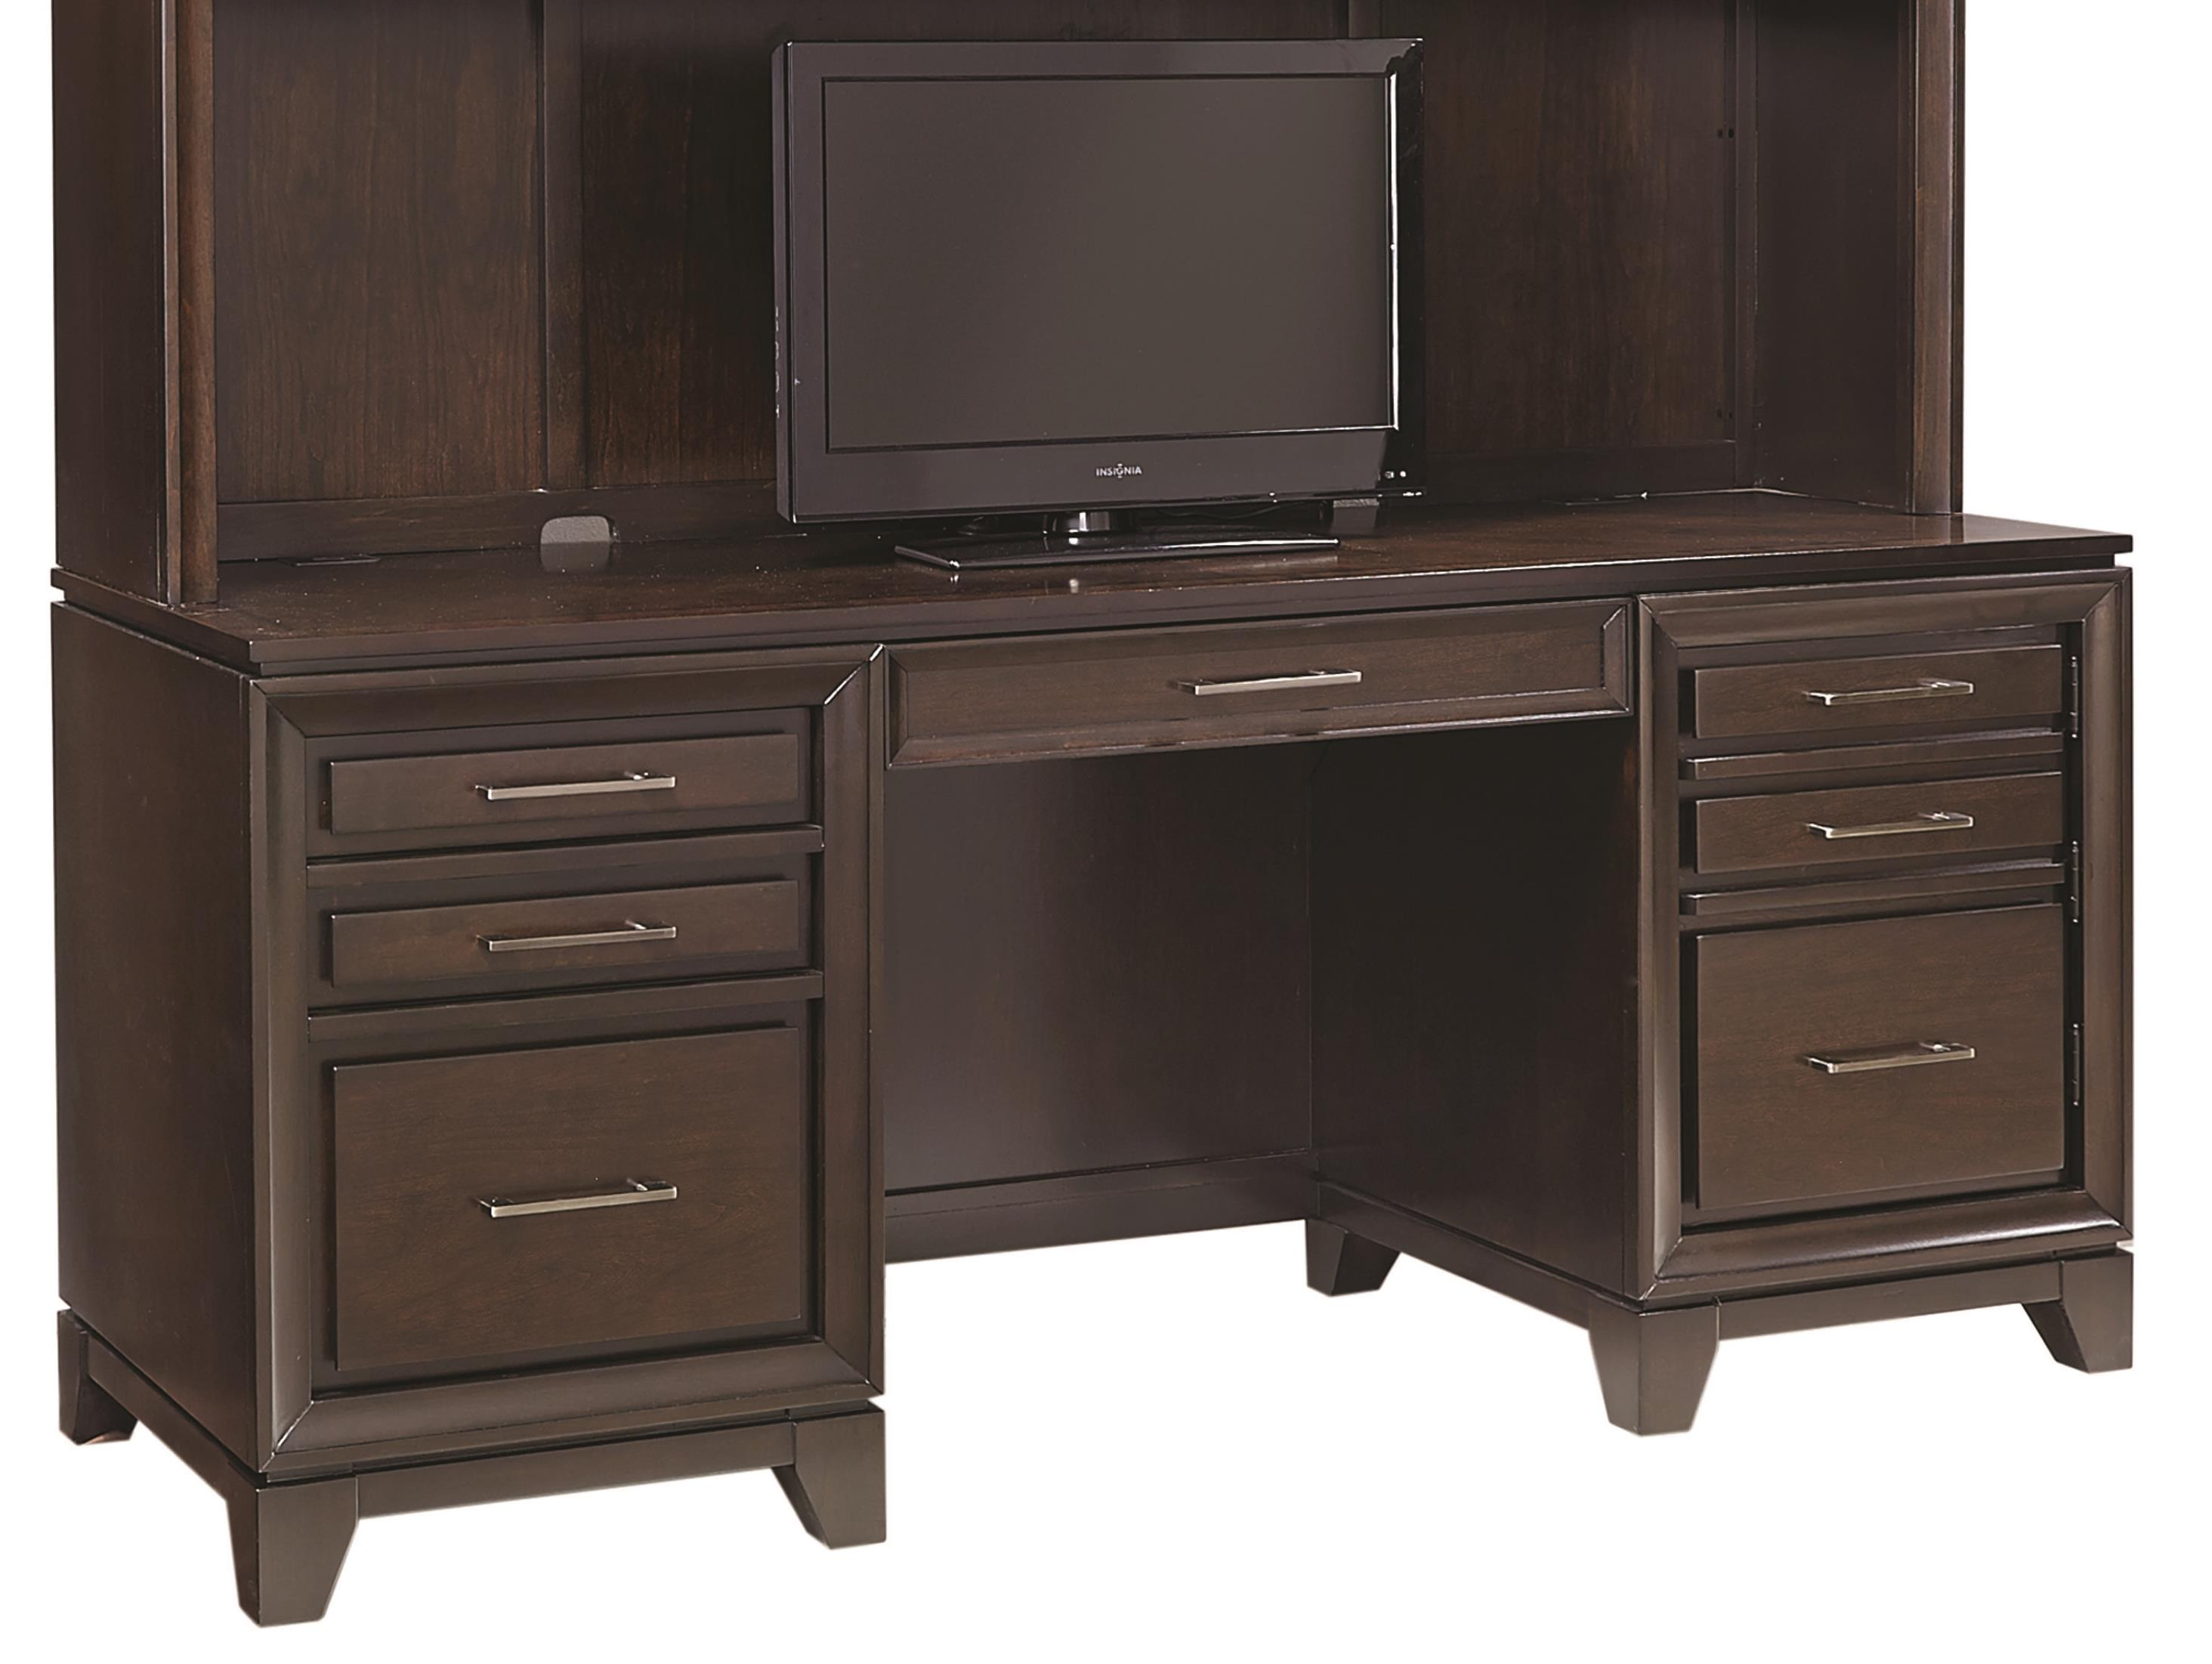 "Aspenhome Viewscape 66"" Double Pedestal Credenza - Item Number: I73-316"